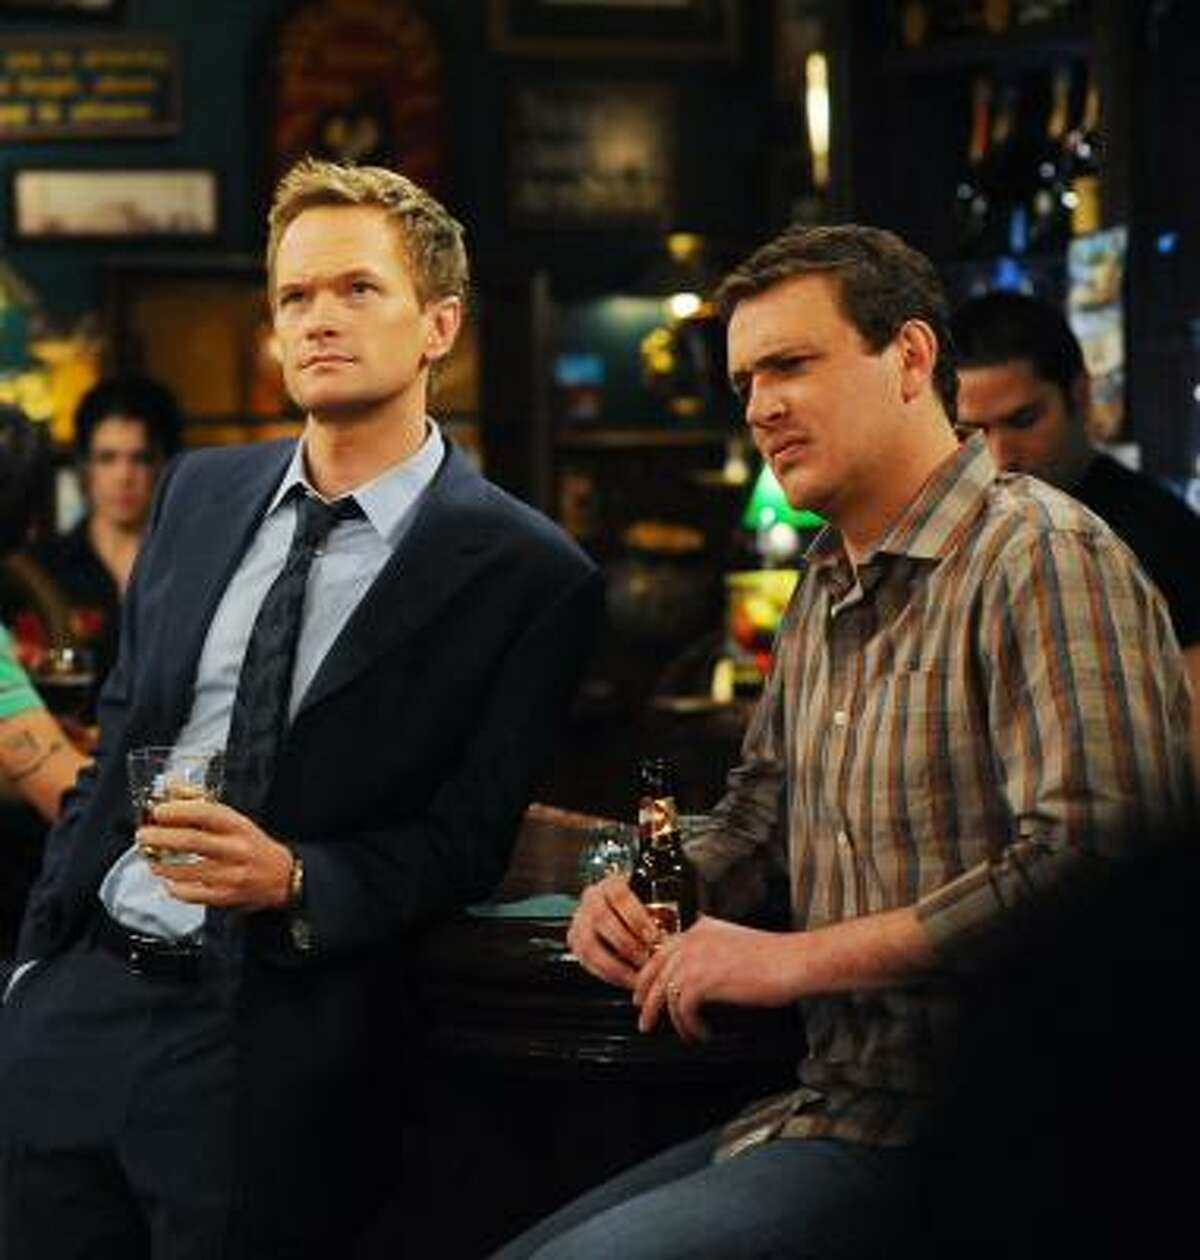 Episodes of How I Met Your Mother, starring Neil Patrick Harris, left, and Jason Segel, can be found on the show's official Web site.